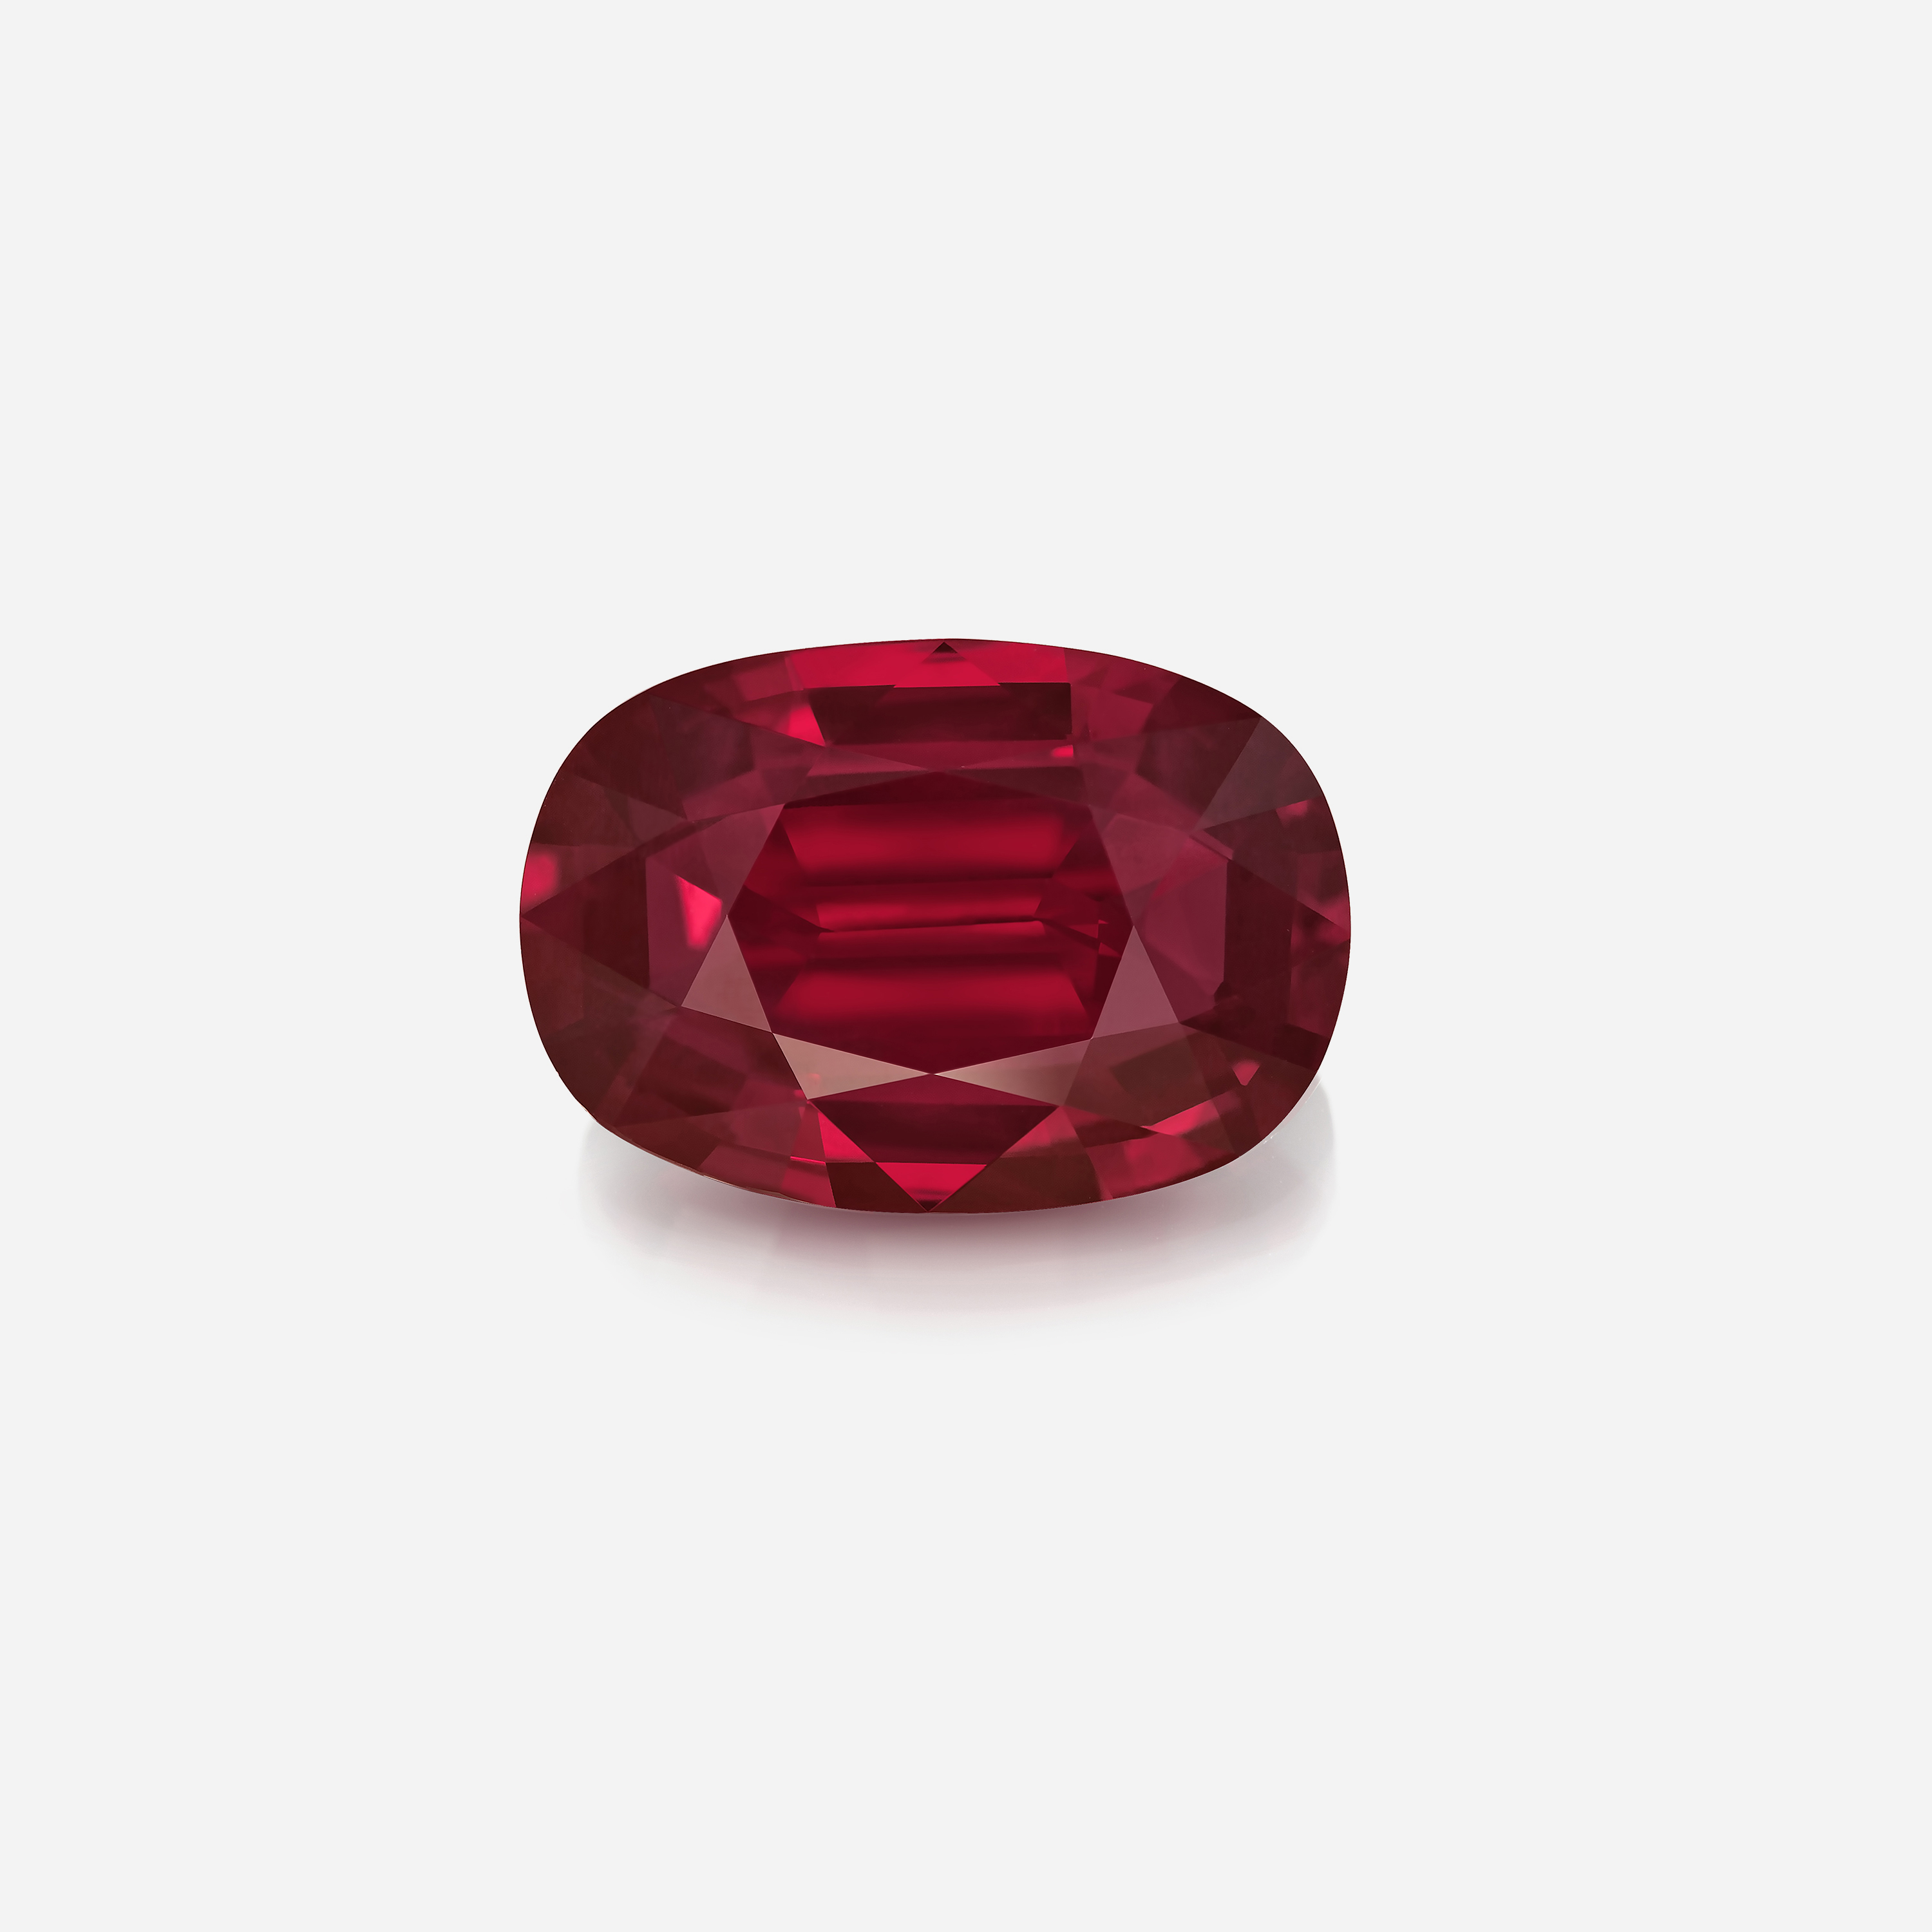 Pidgeon's blood Ruby, Mozambique no heat, 13ct